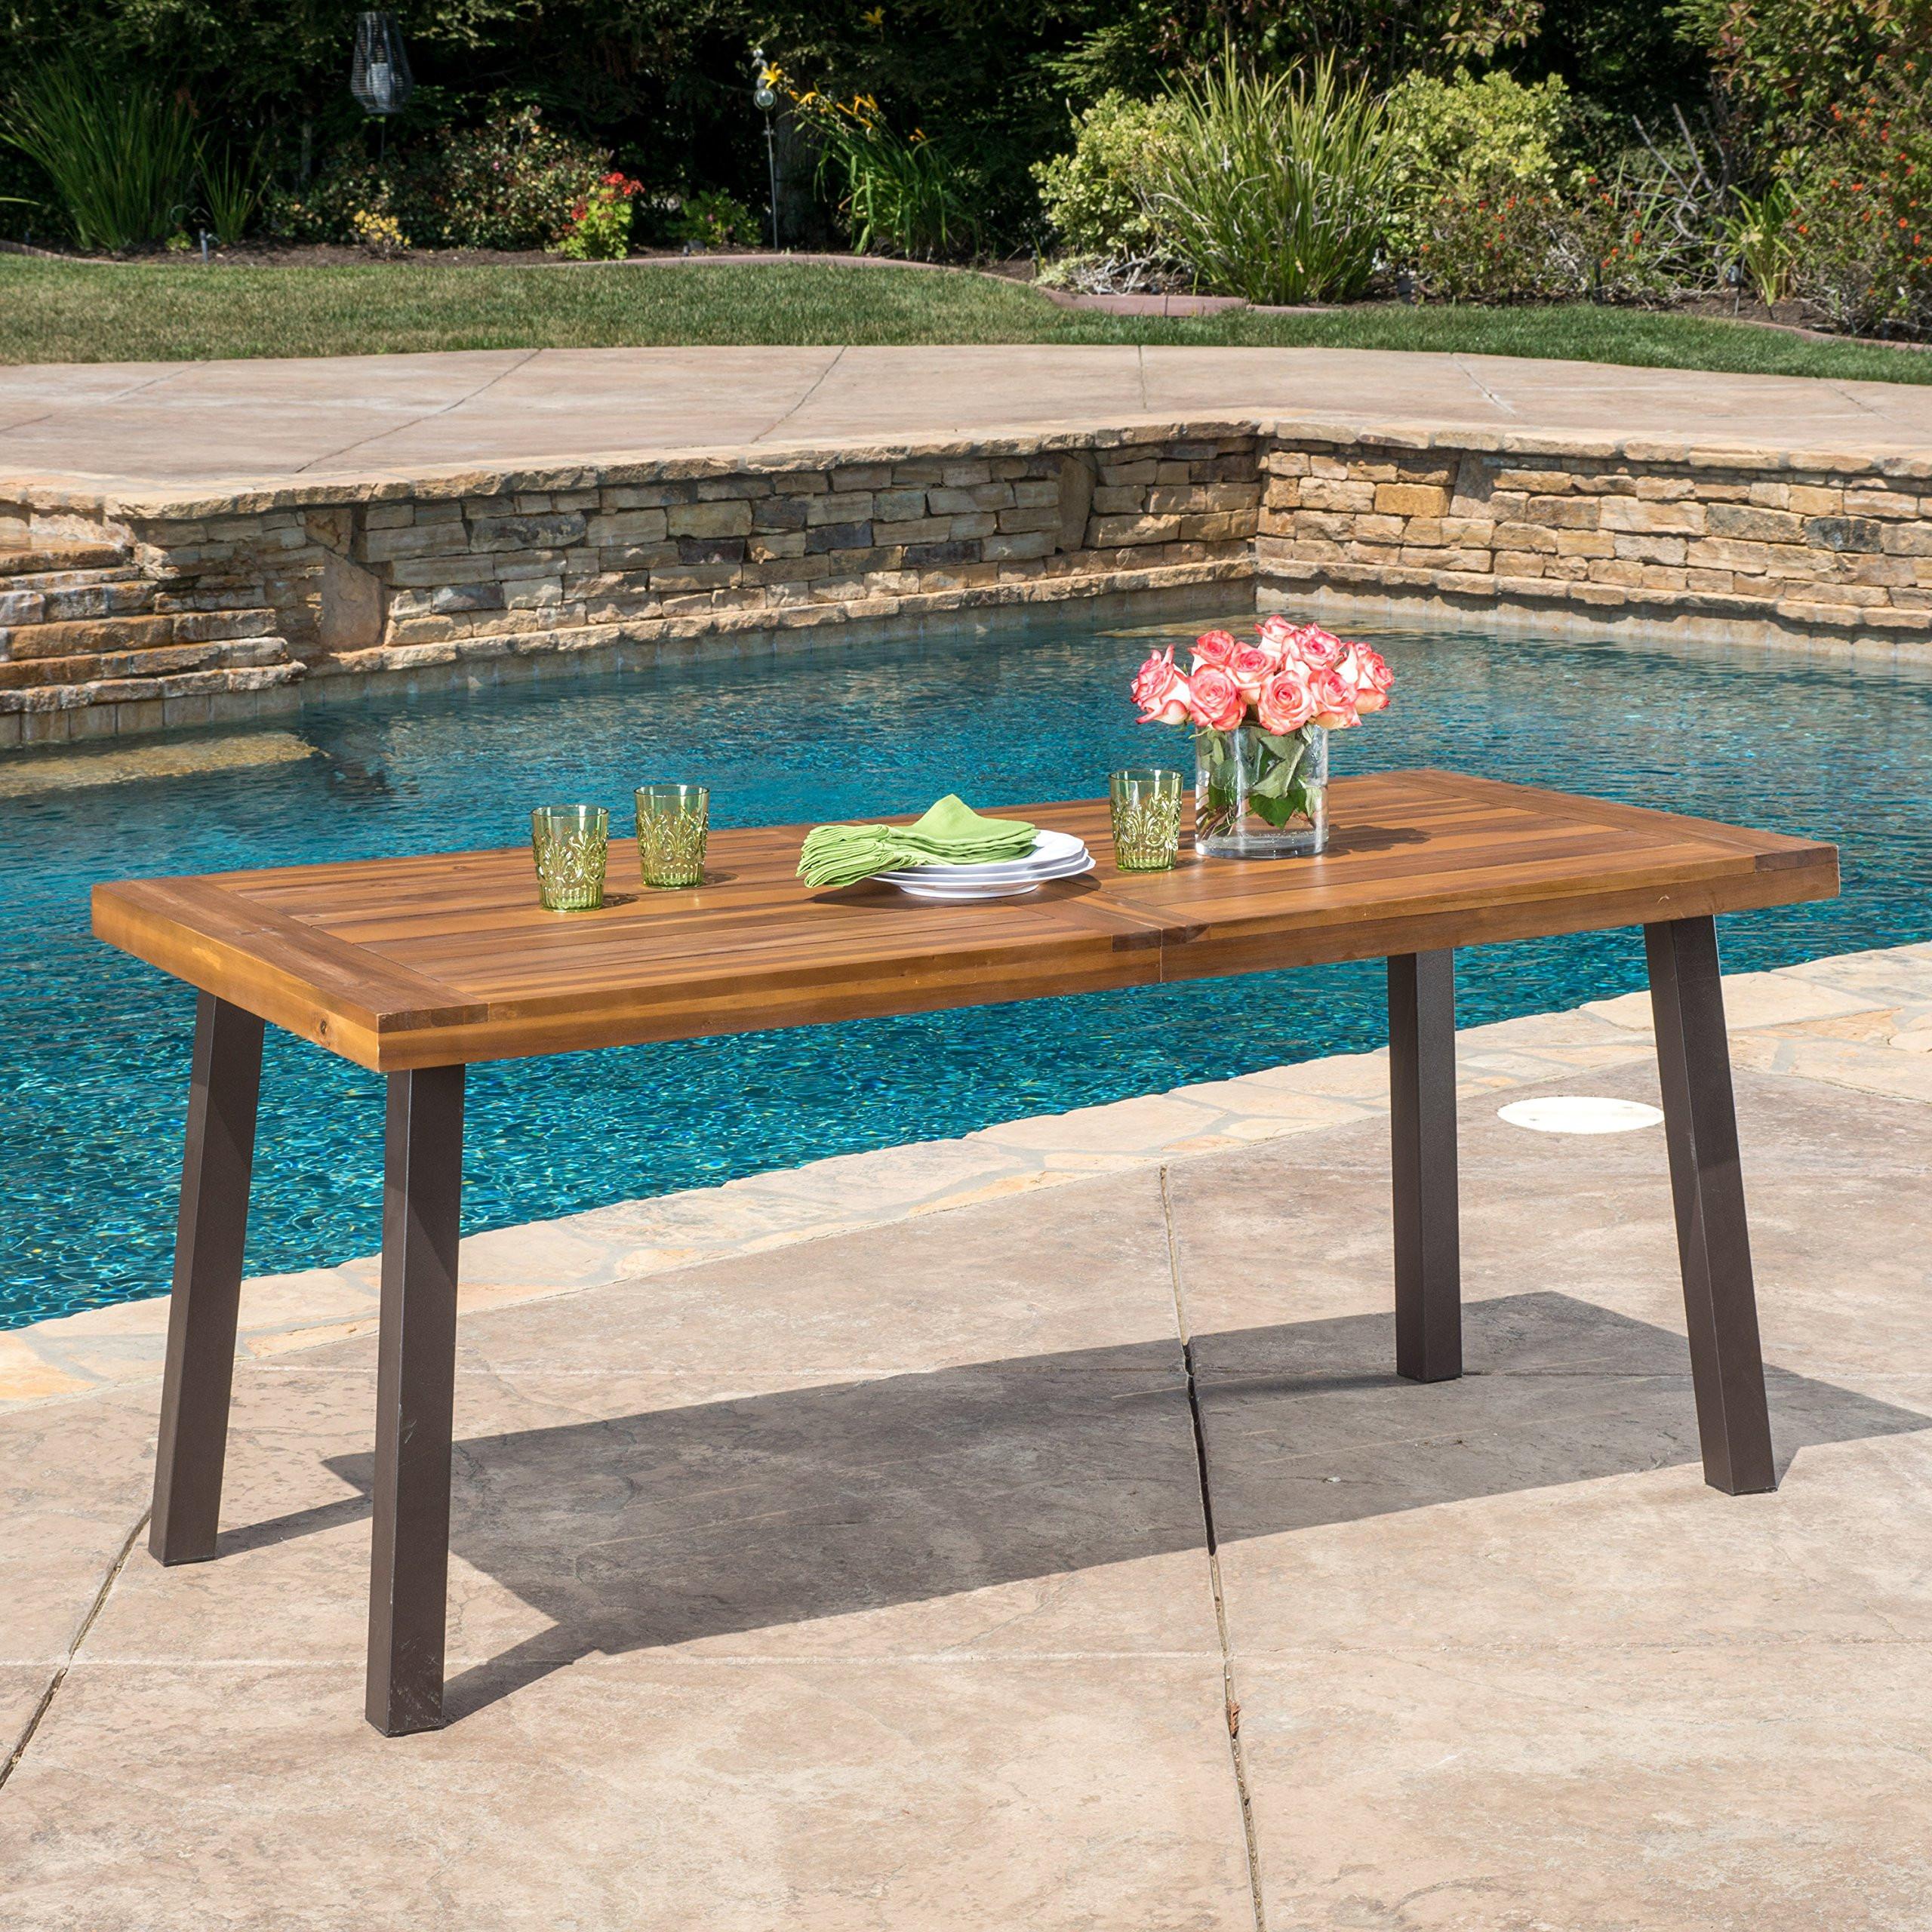 Spanish Bay Teak Finish Acacia Wood Dining Table by Great Deal Furniture